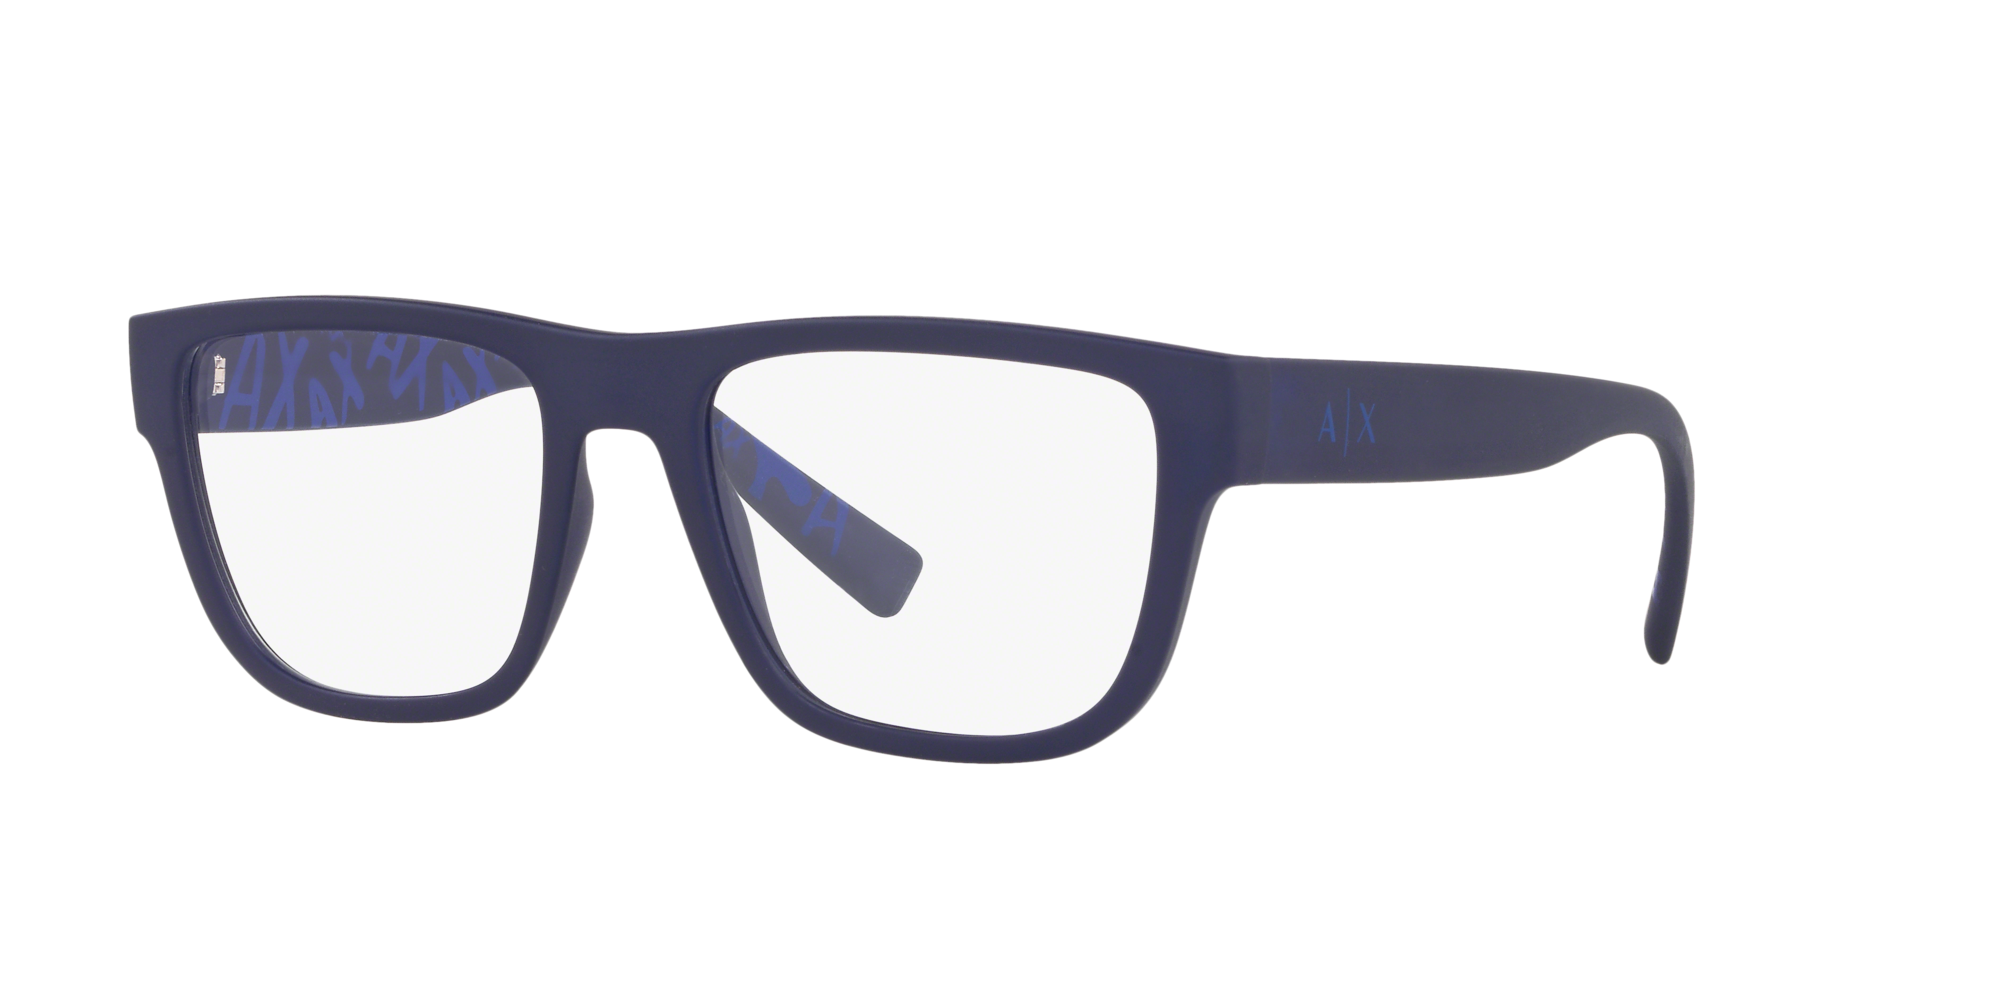 armani exchange eyewear